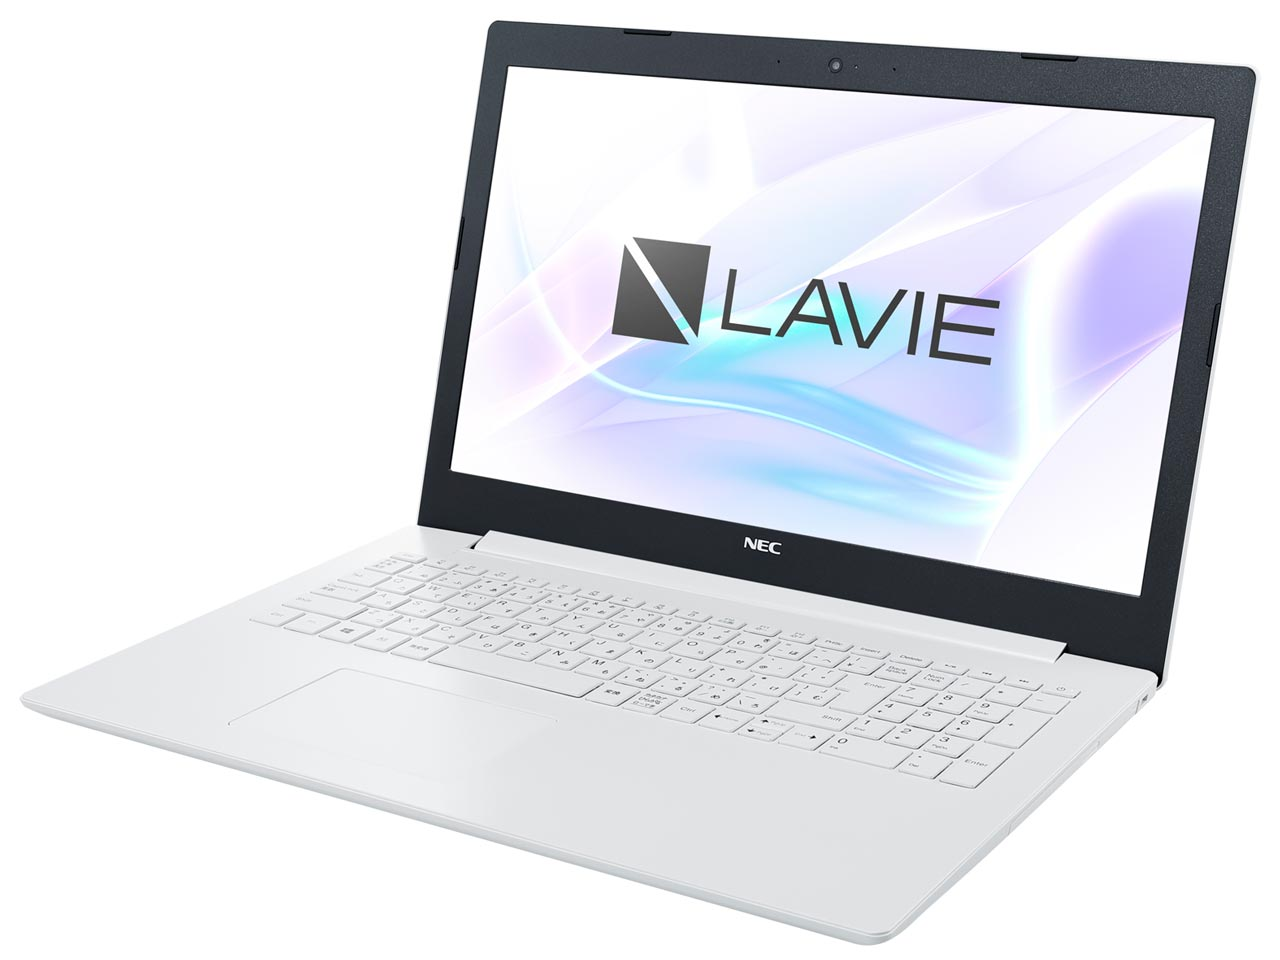 LAVIE Note Standard NS600/MAW PC-NS600MAW [カームホワイト] の製品画像